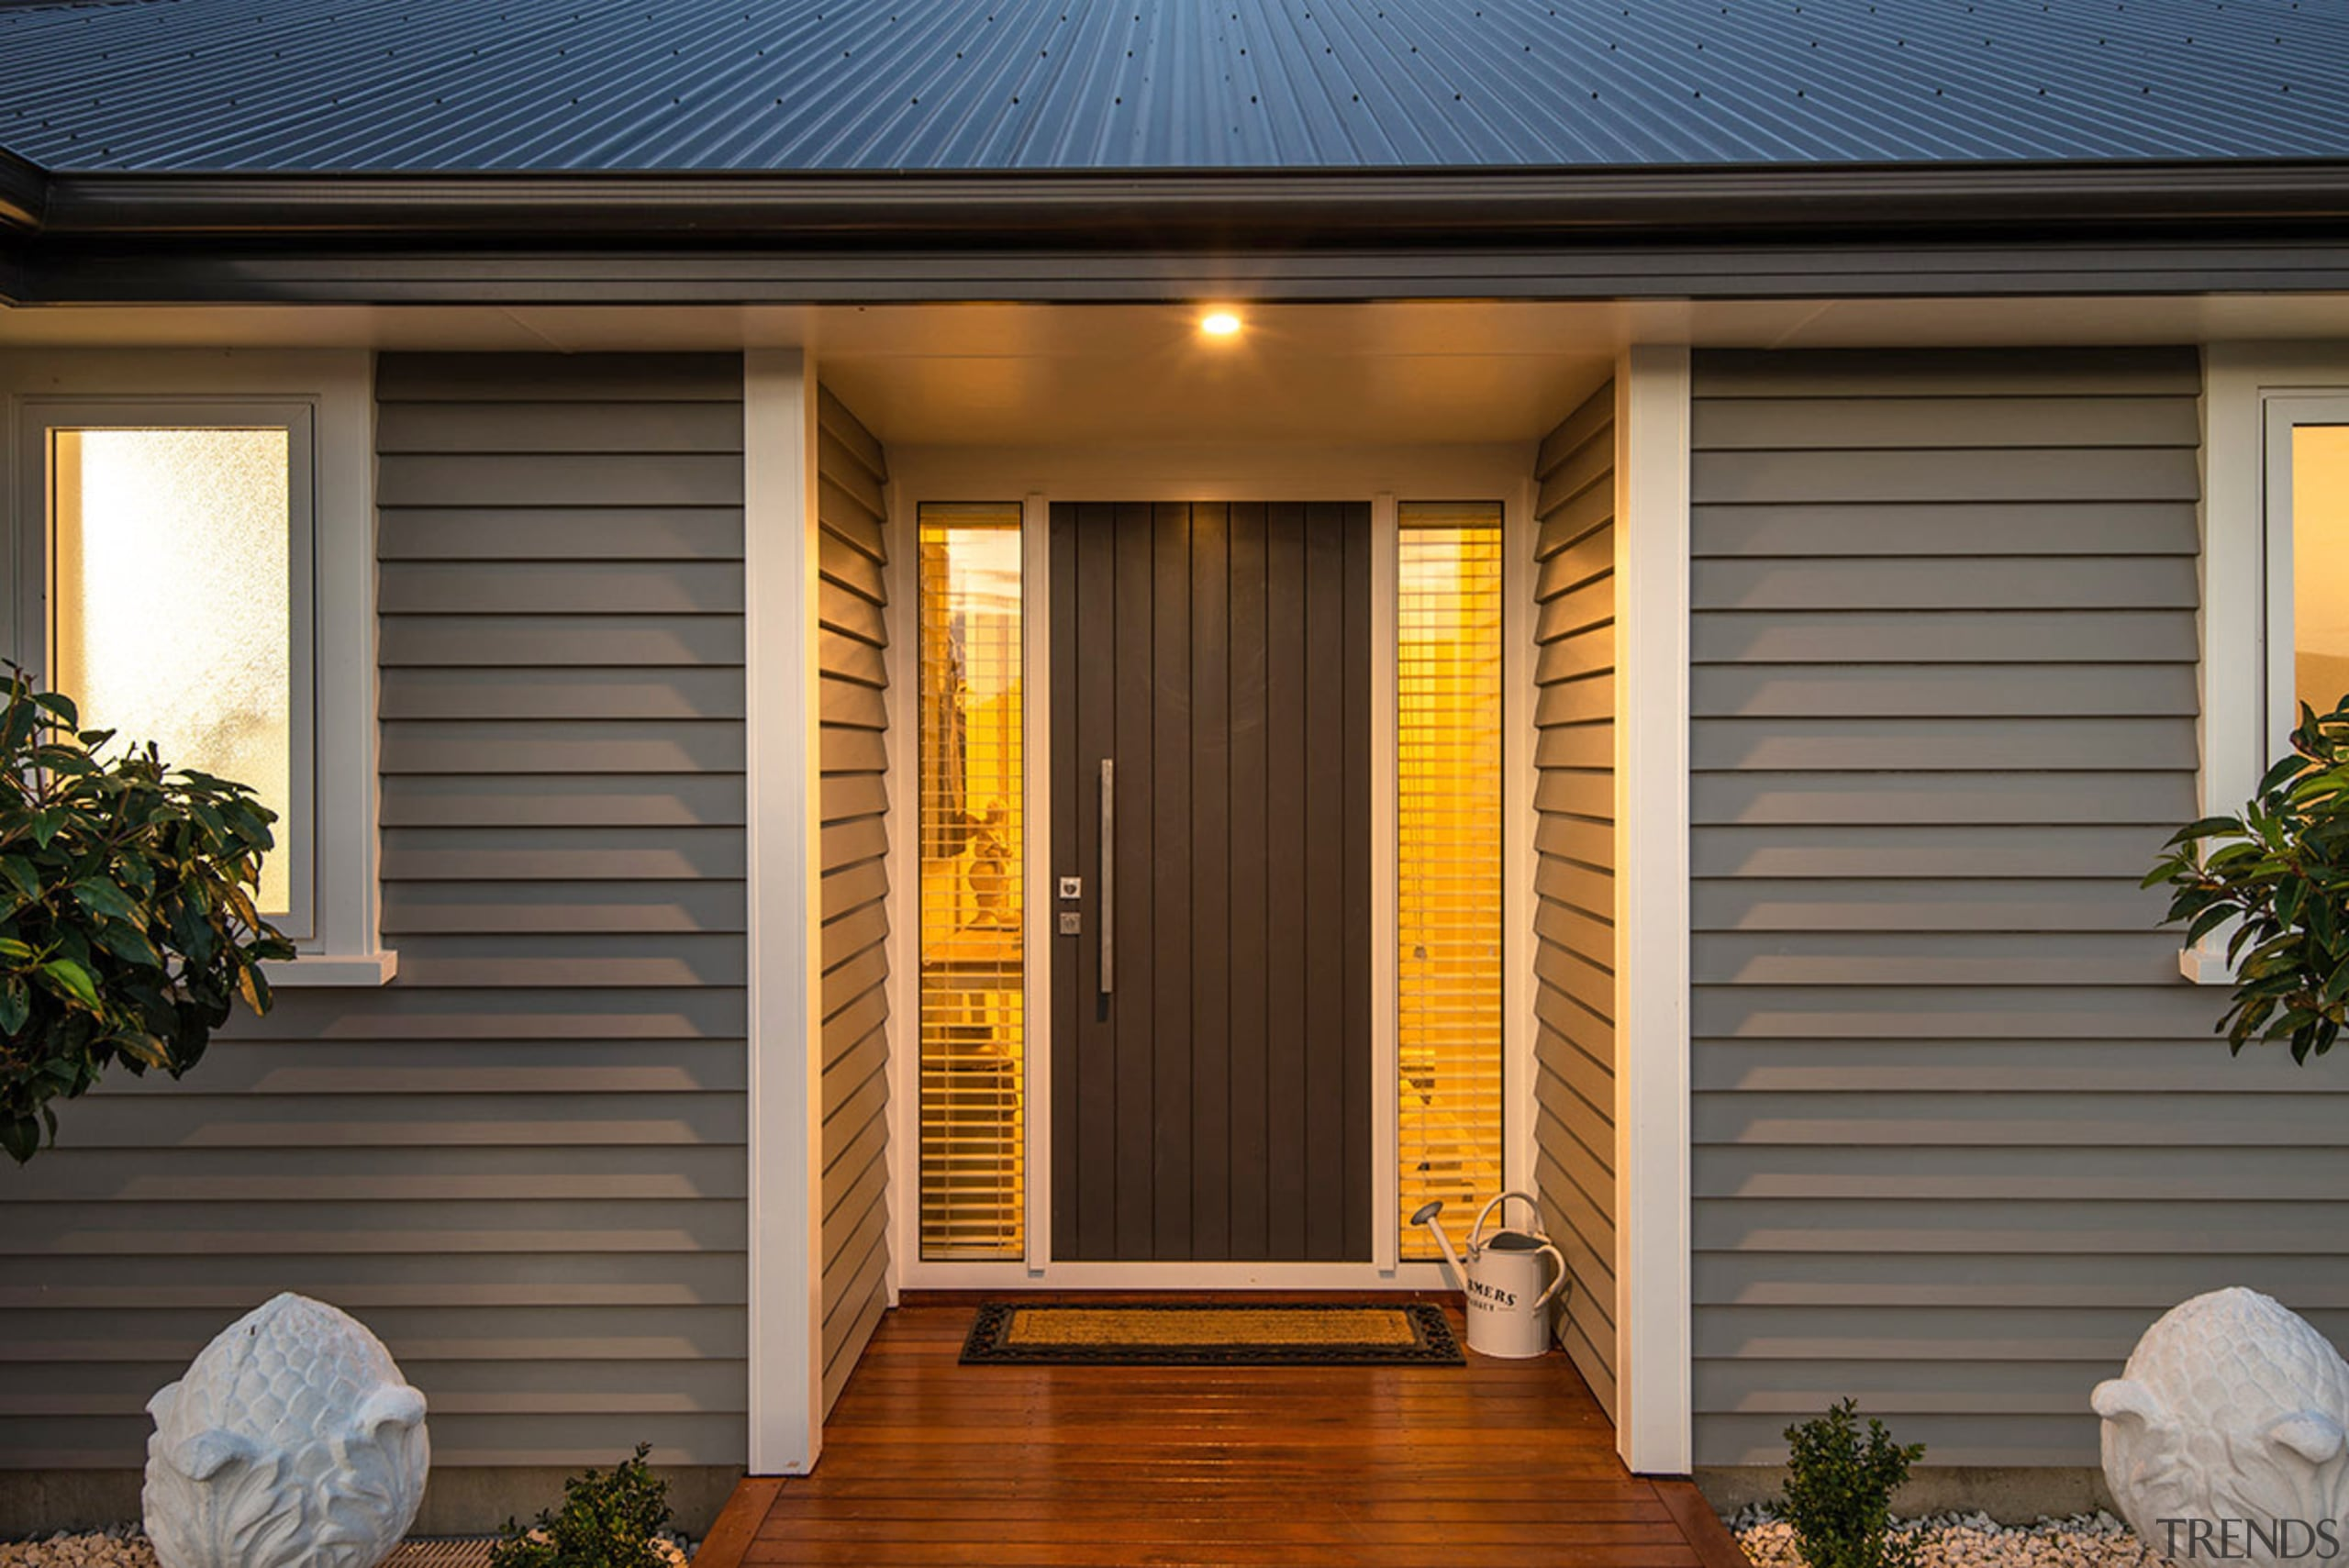 All Envira weatherboards and components are protected by door, facade, home, house, property, real estate, siding, window, brown, gray